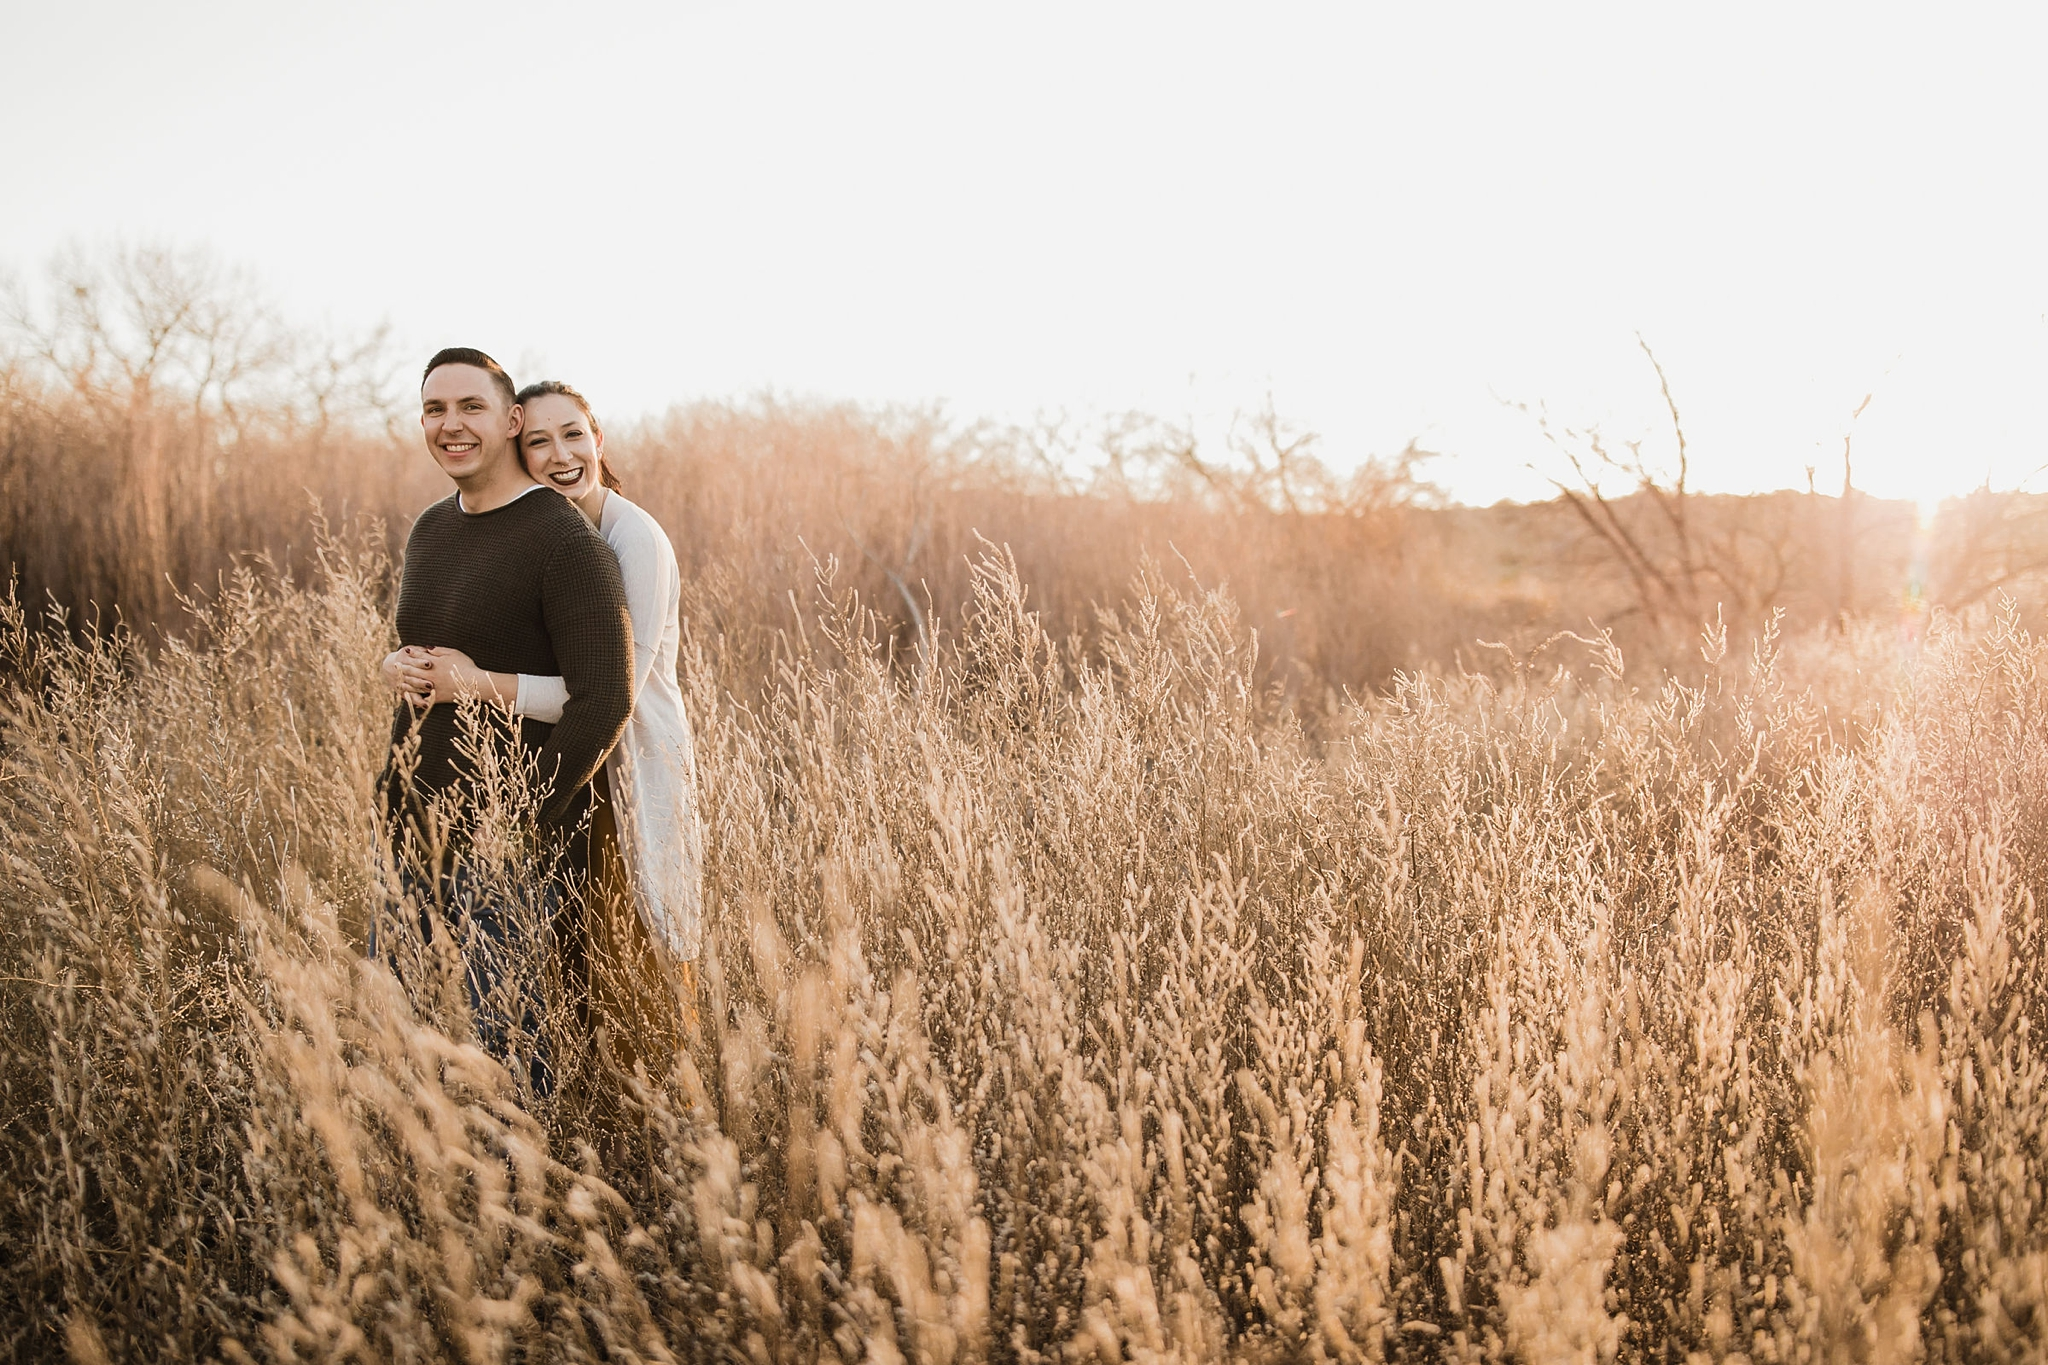 Alicia+lucia+photography+-+albuquerque+wedding+photographer+-+santa+fe+wedding+photography+-+new+mexico+wedding+photographer+-+new+mexico+wedding+-+engagement+-+new+mexico+engagemnt+-+outdoor+engagement_0007.jpg